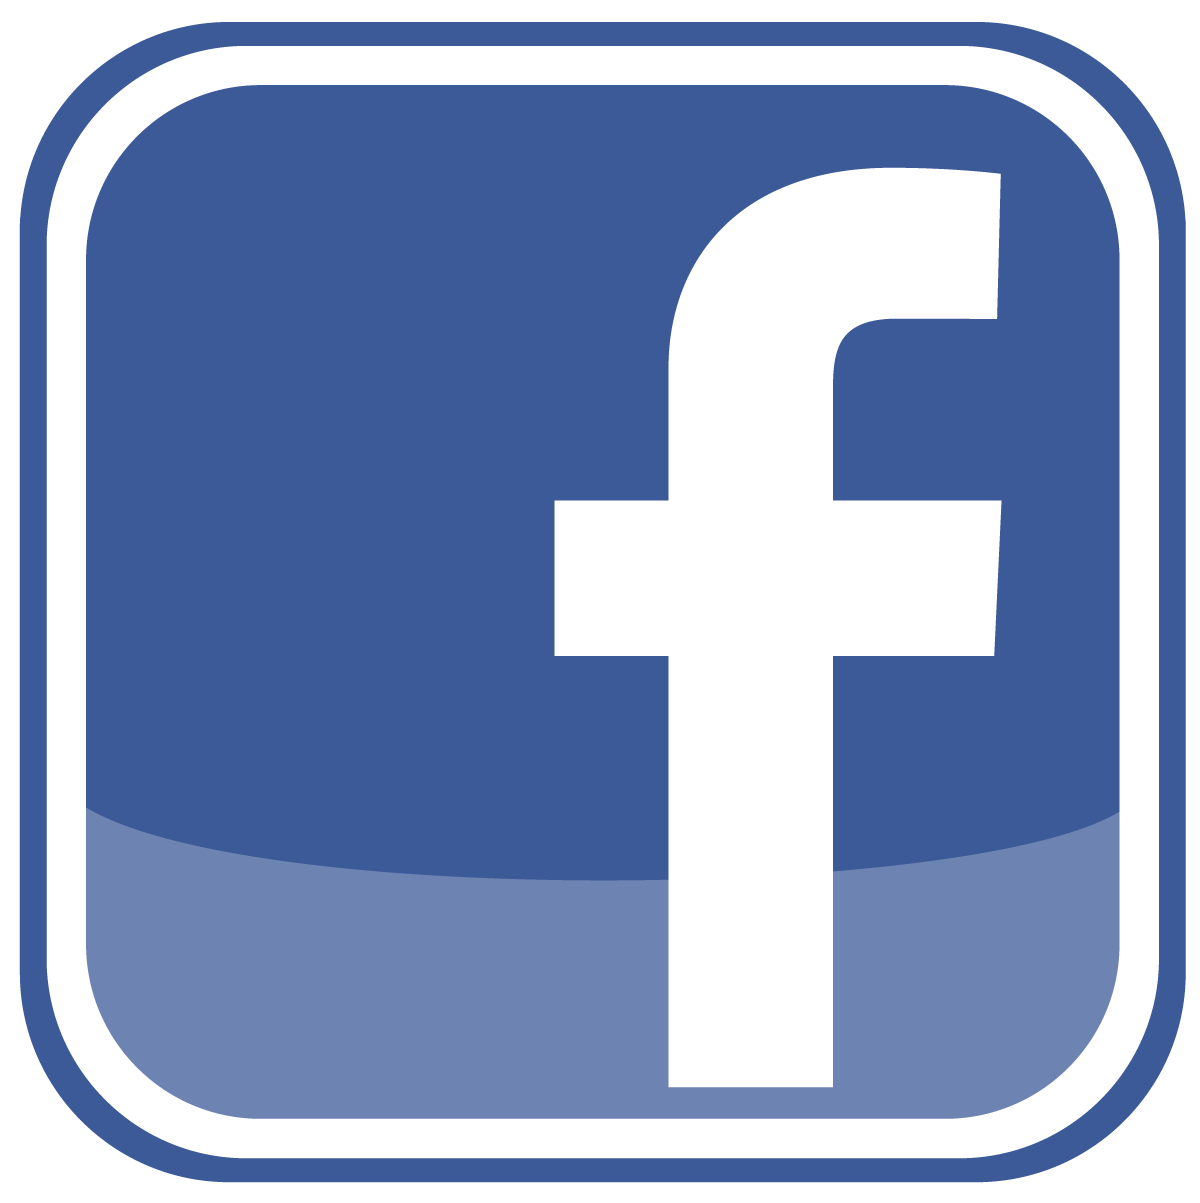 facebook icon png 738